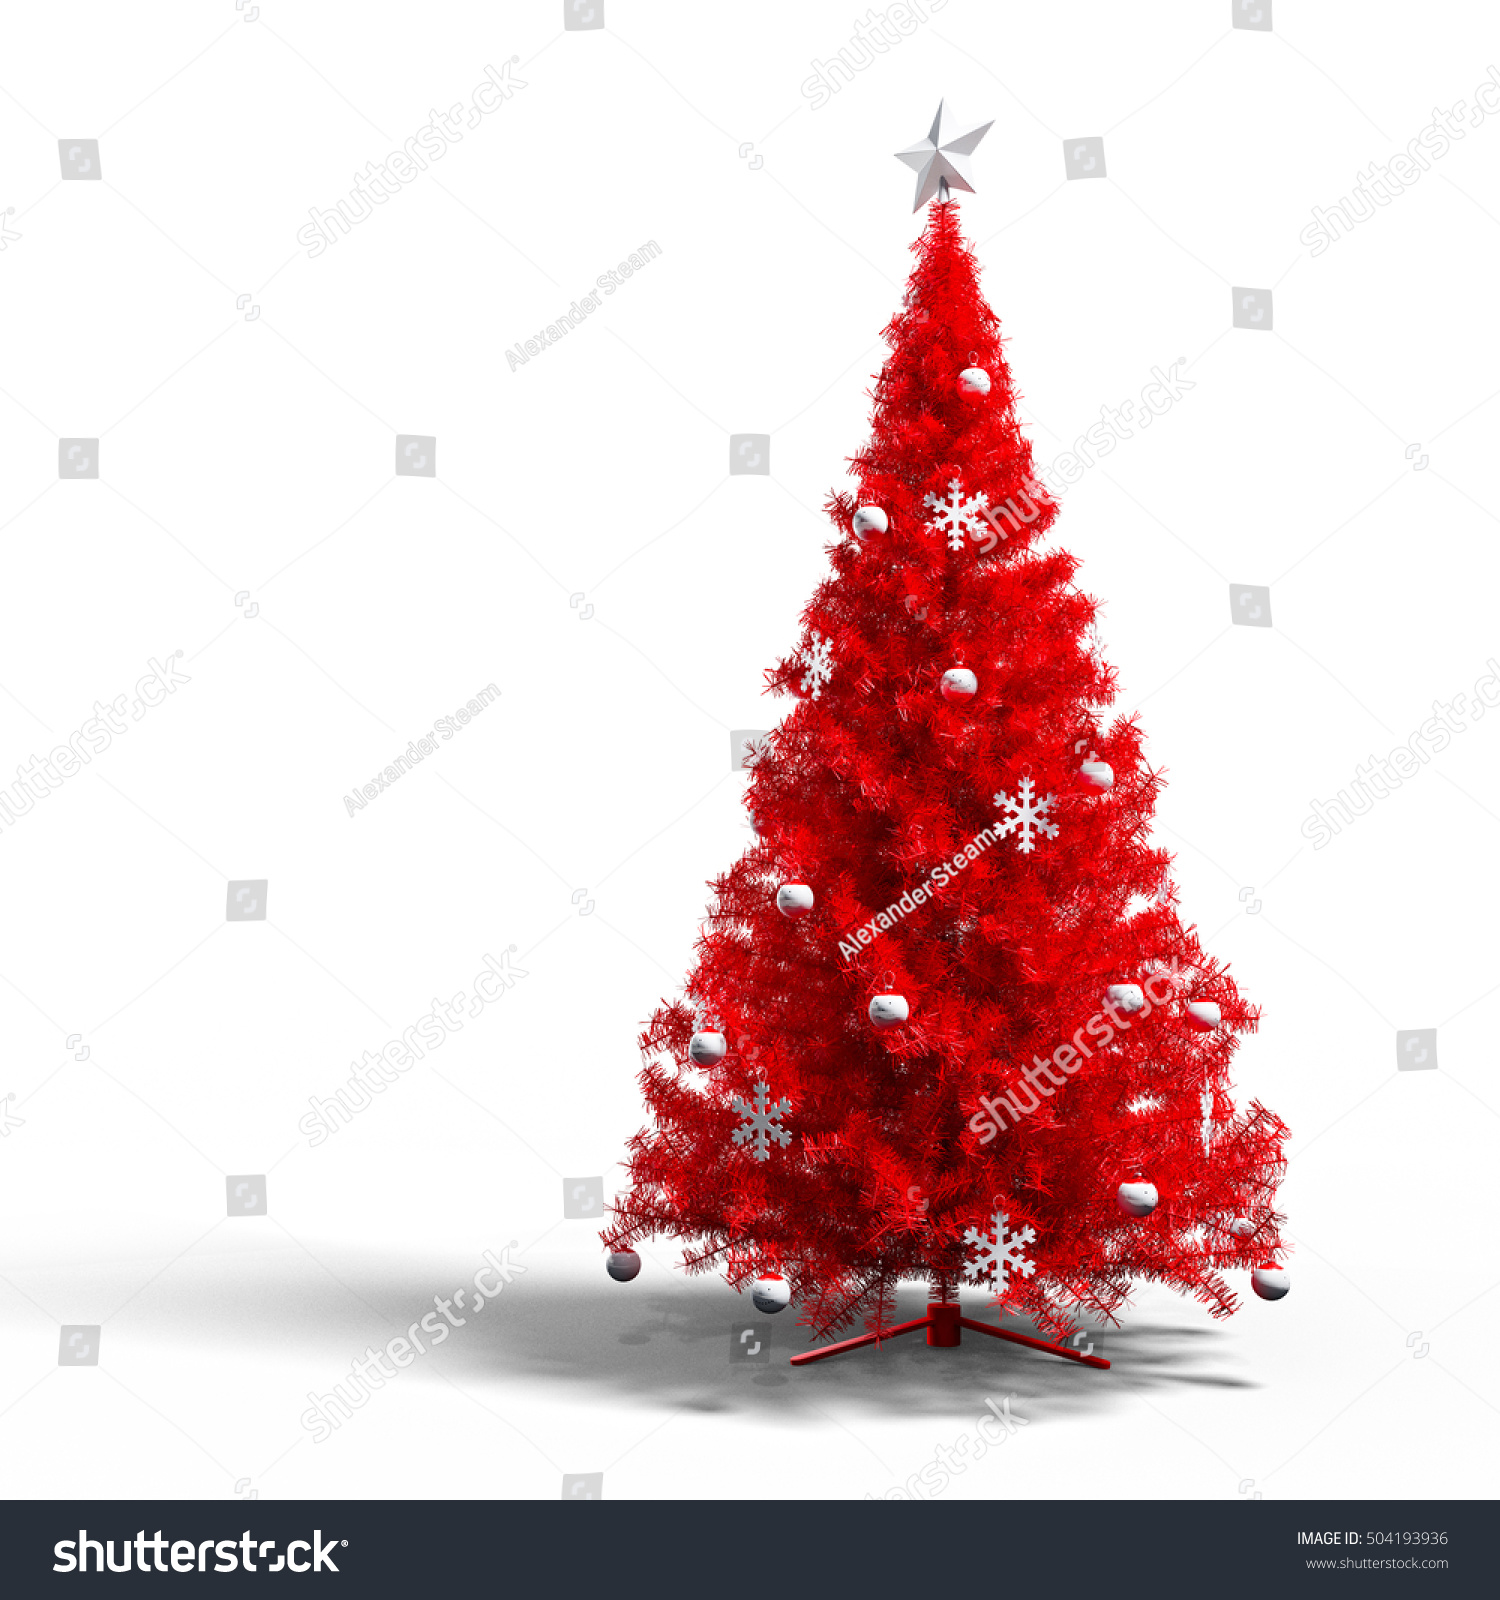 Red Christmas Treefurry Fur Tree Beautiful Christmas Tree Christmas Decorations